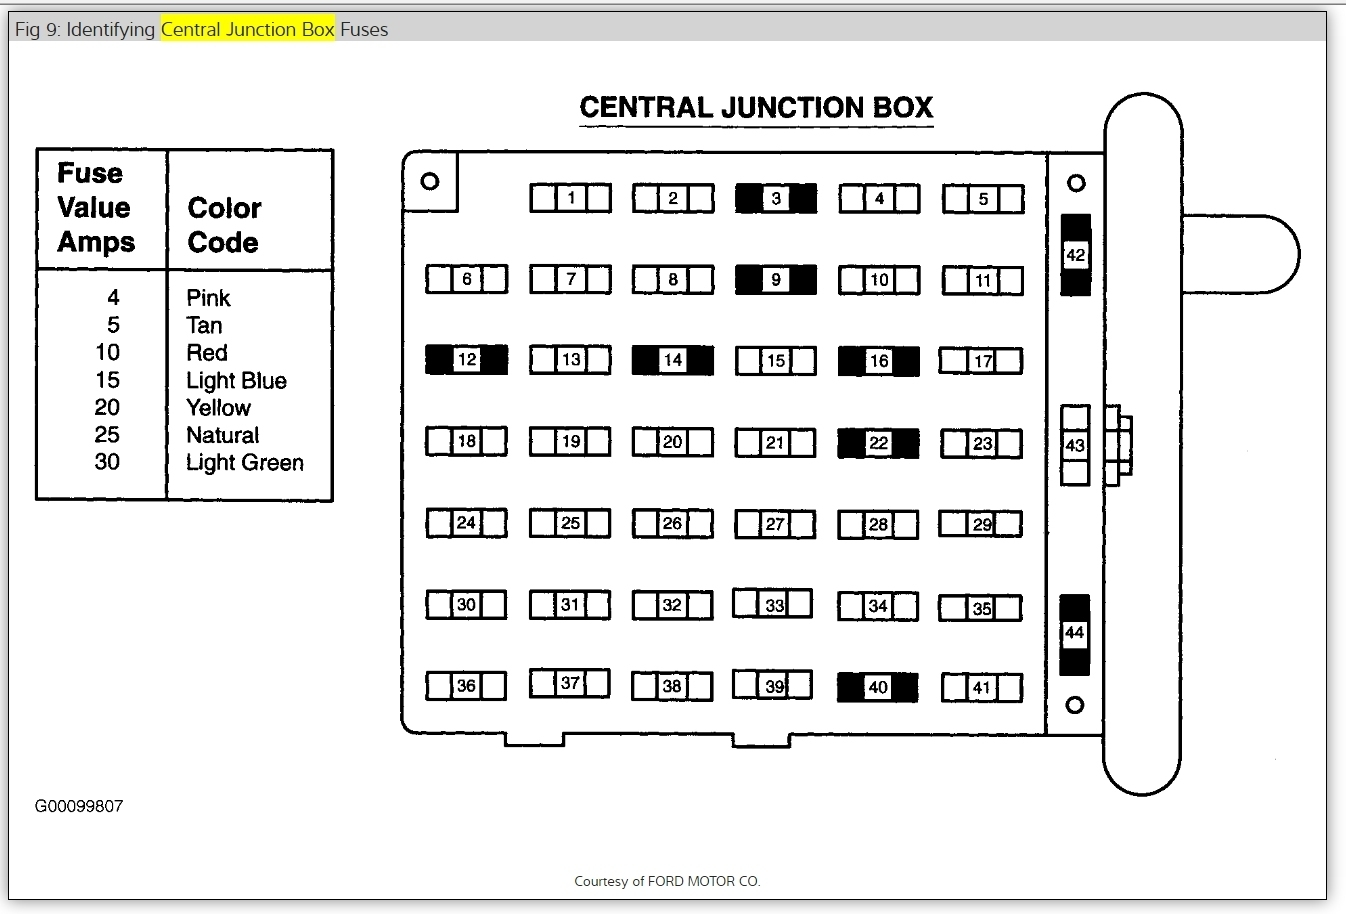 original 1999 ford mustang fuse box layout electrical problem 1999 ford 2004 ford mustang fuse box diagram at mifinder.co